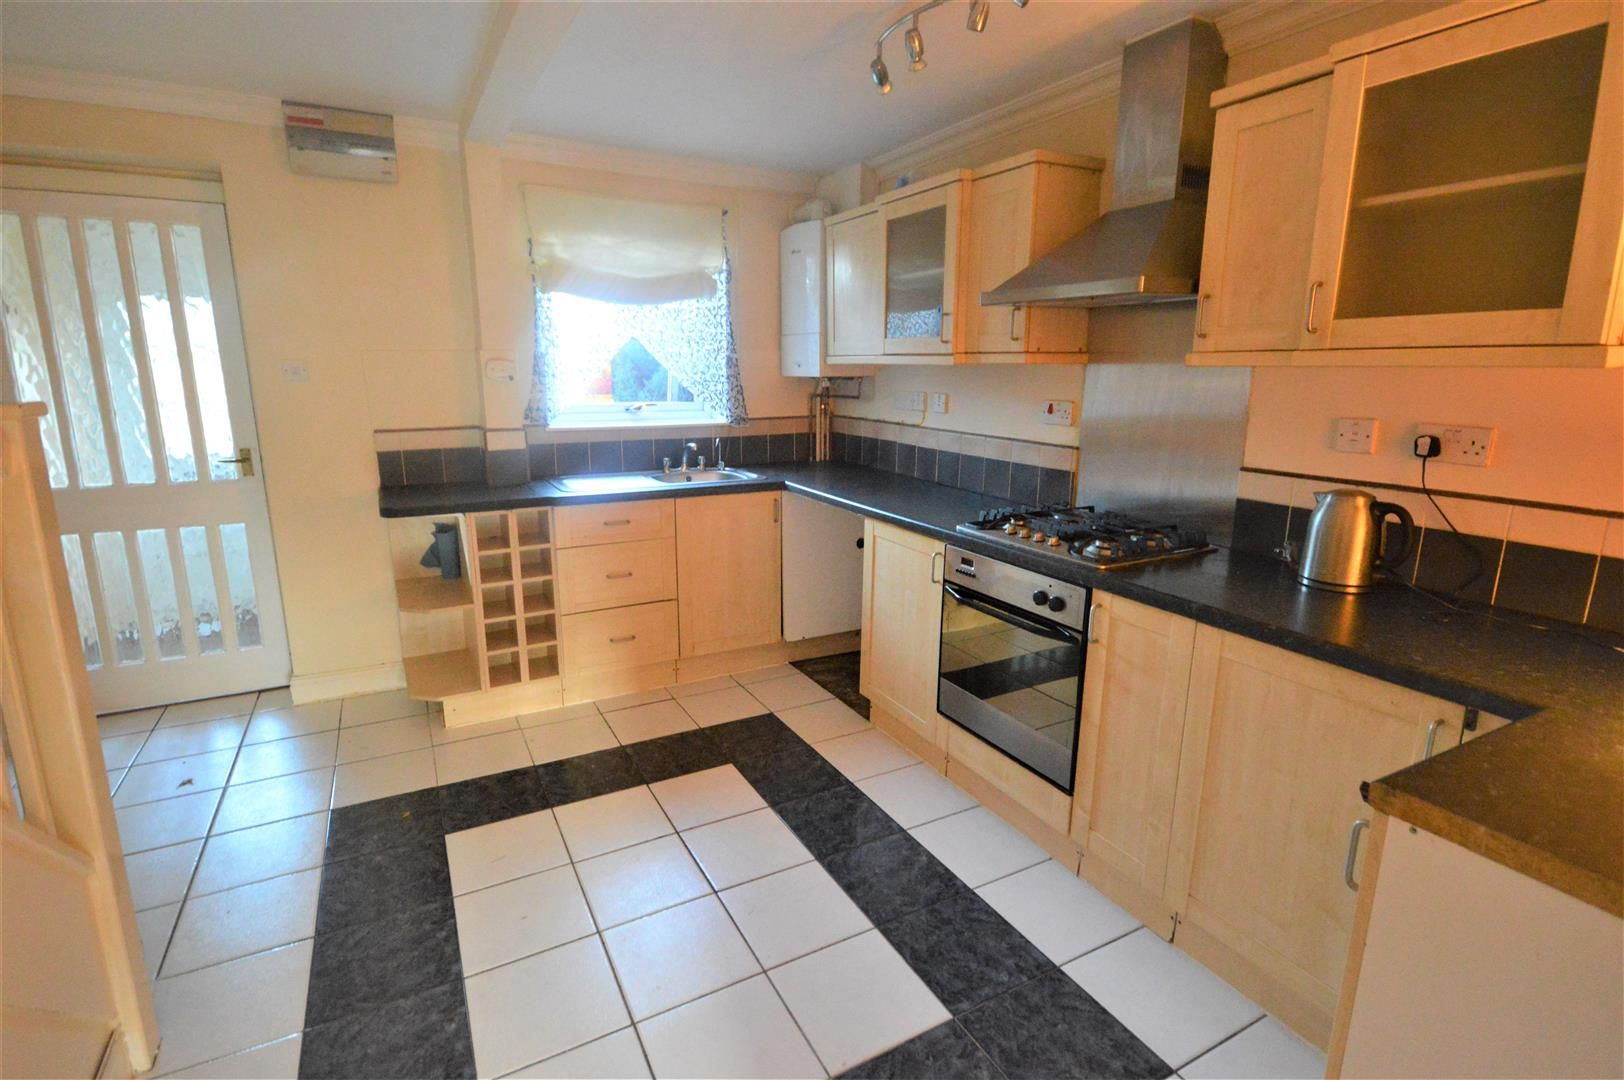 2 bed terraced for sale in Leominster 3